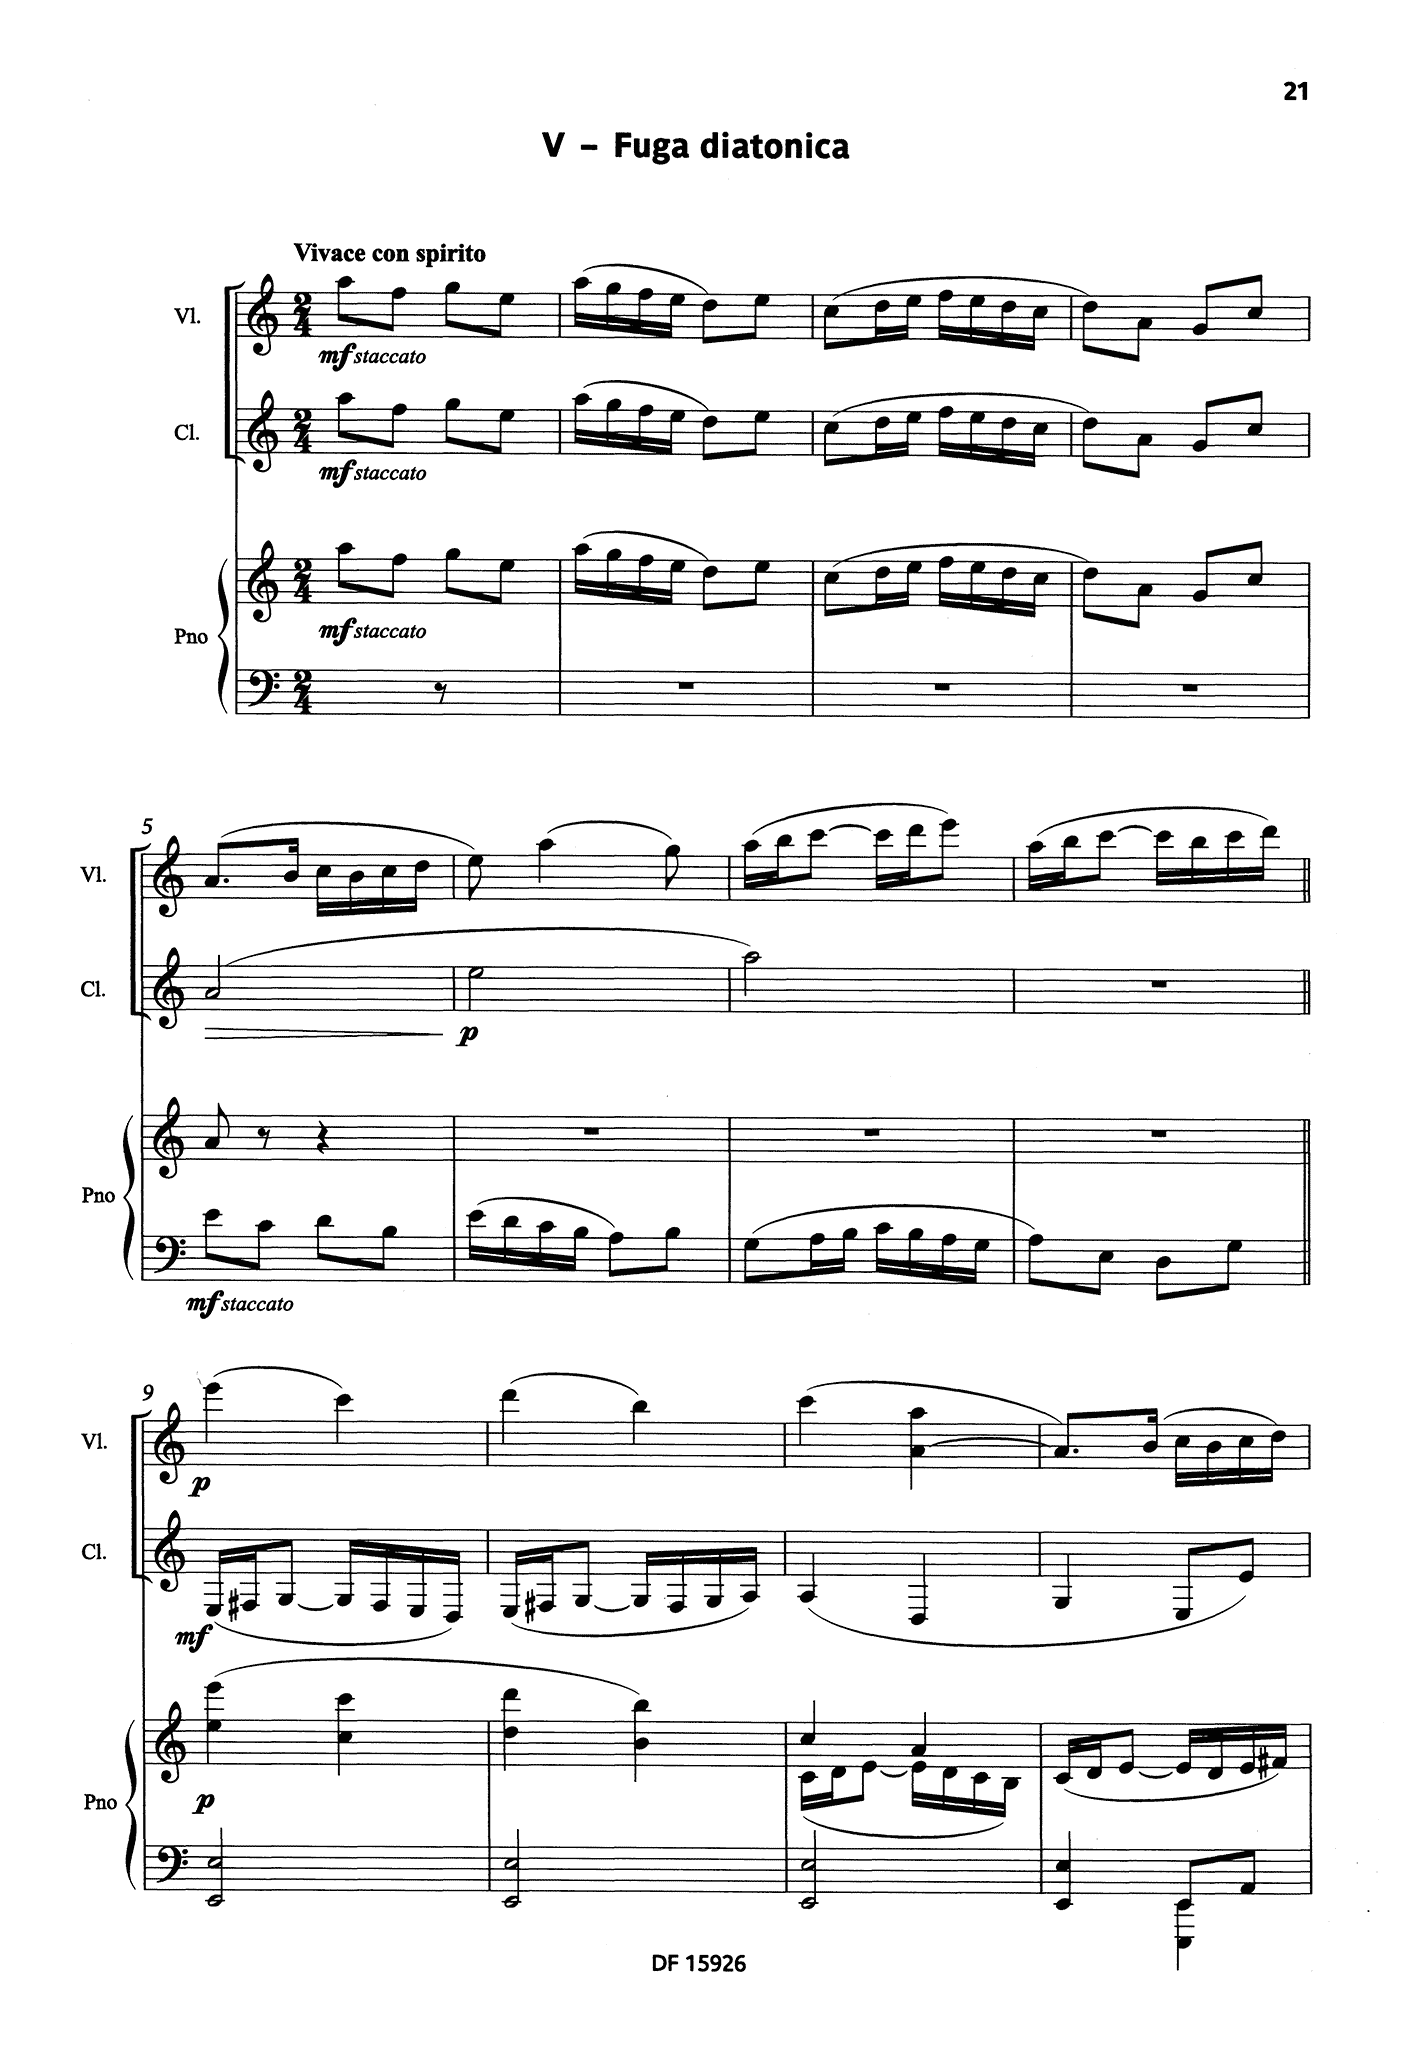 Bacri A Smiling Suite, Op. 100b - Movement 5